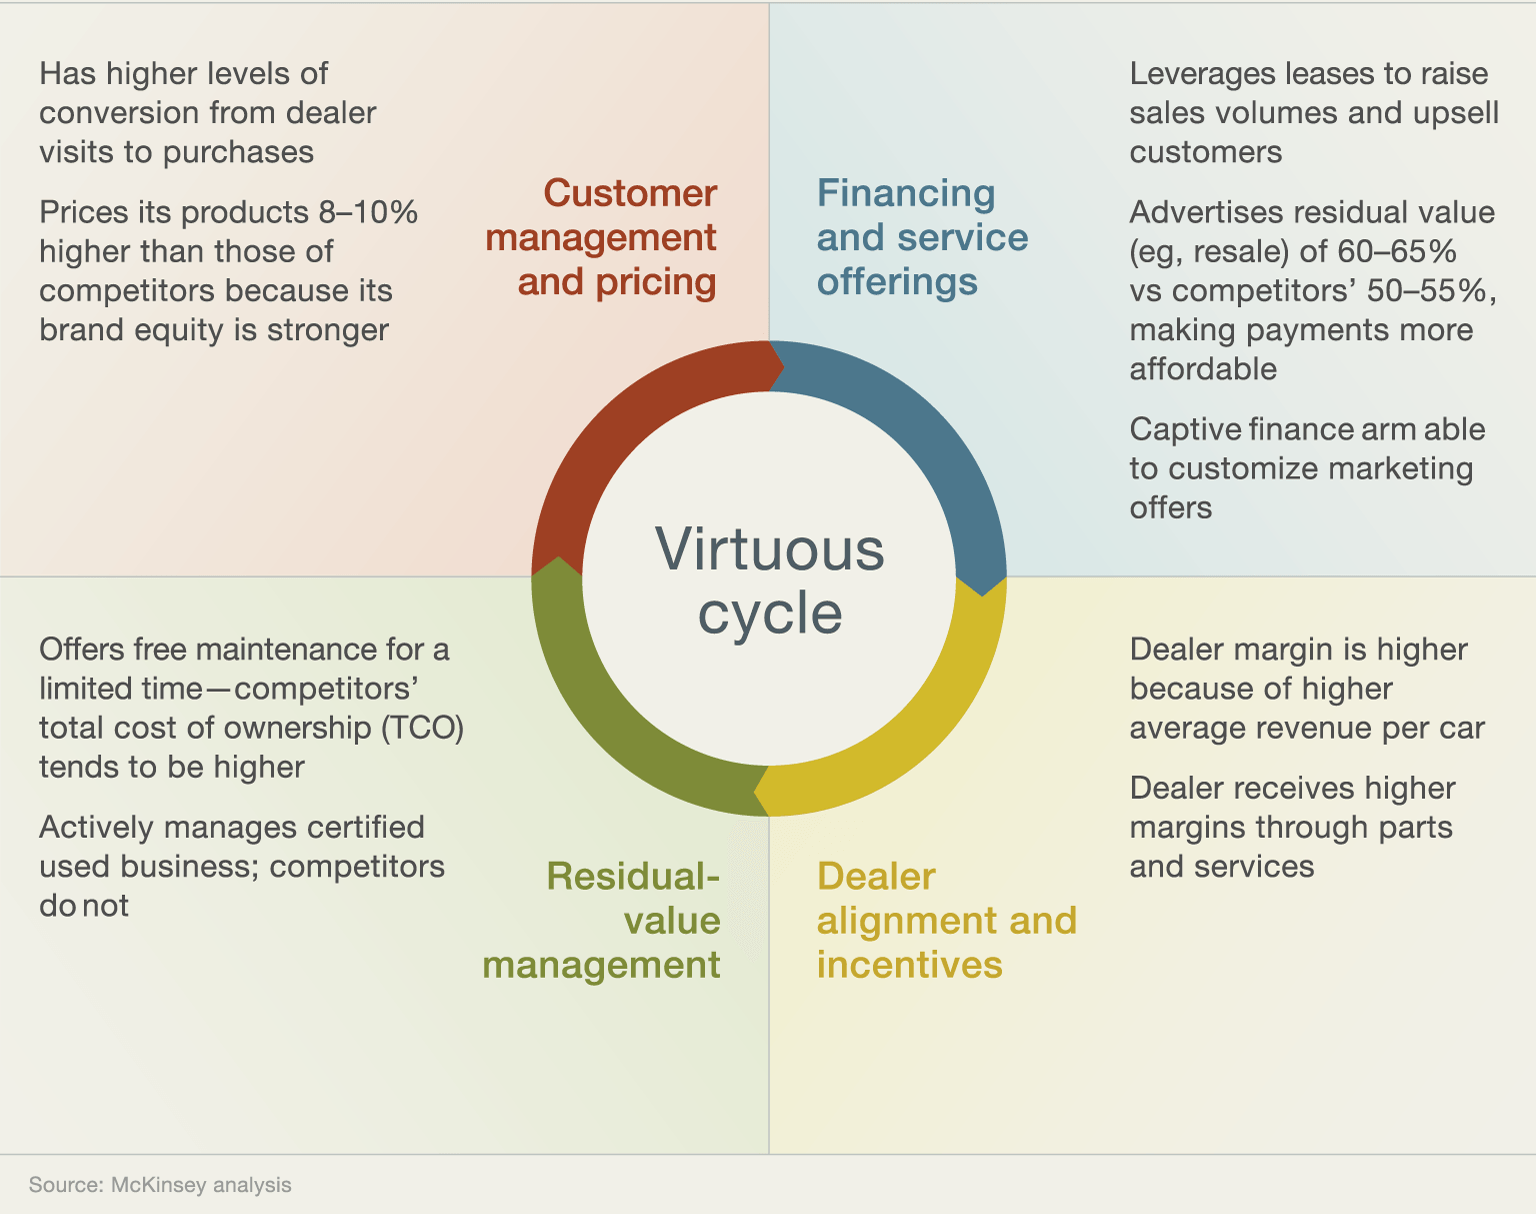 a virtuous cycle for top line growth company one automotive player has been an industry leader in implementing the virtuous cycle